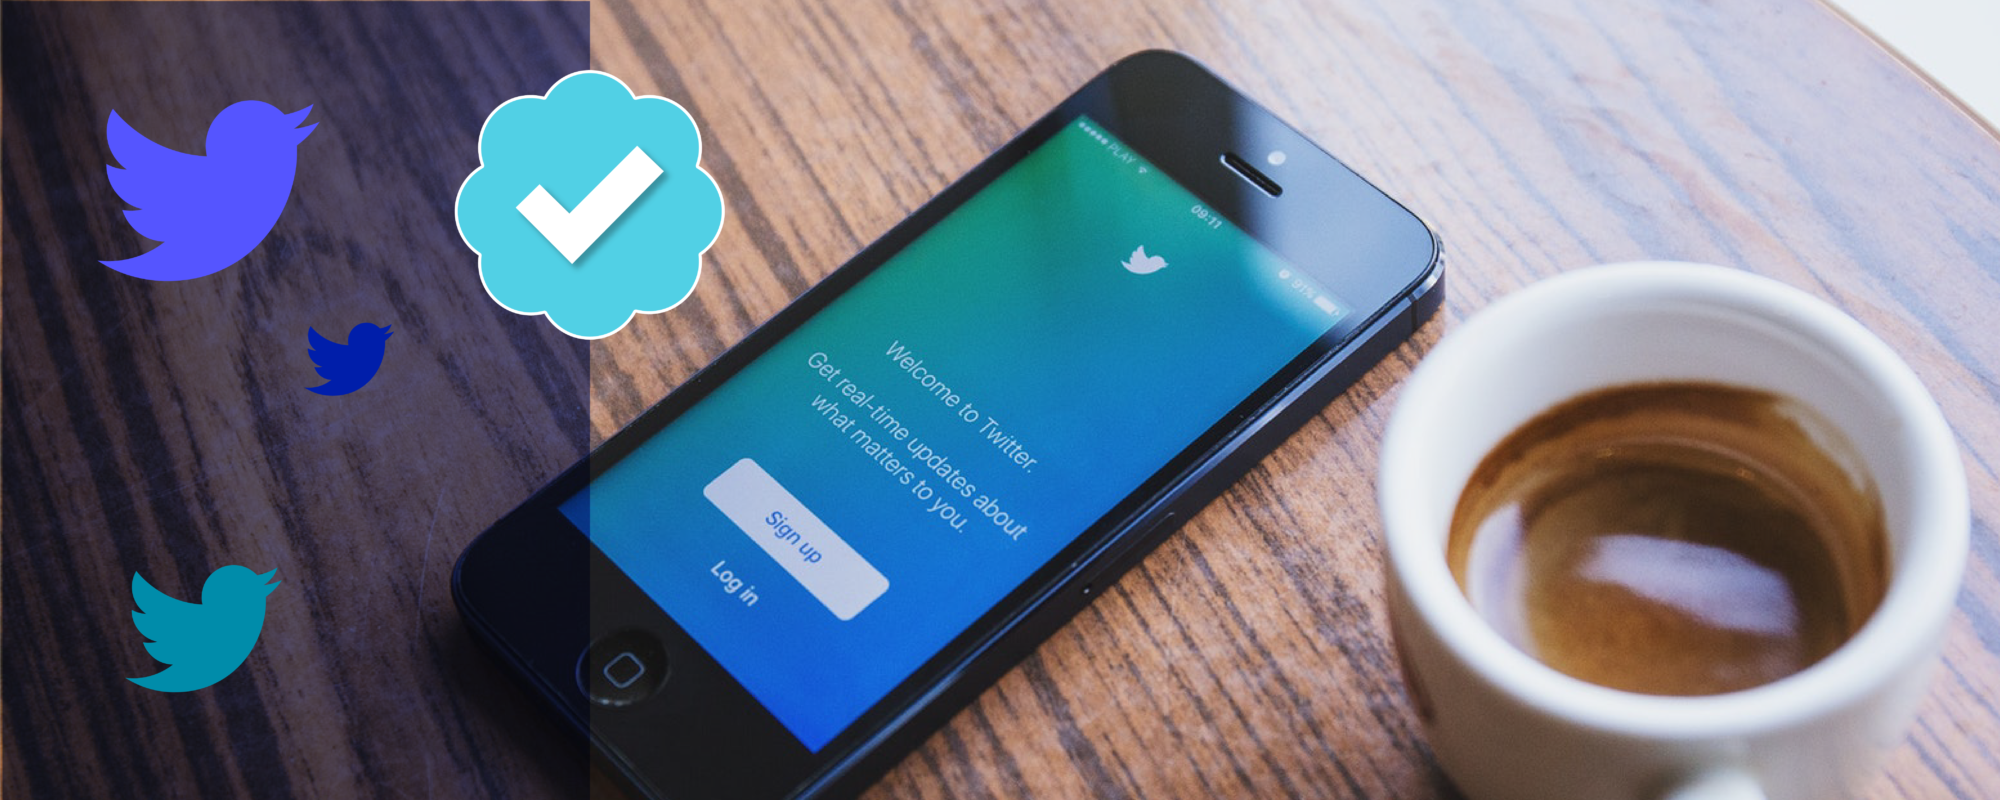 Everyday Marketing Part 3: How To Verify Your B2B Business On Twitter